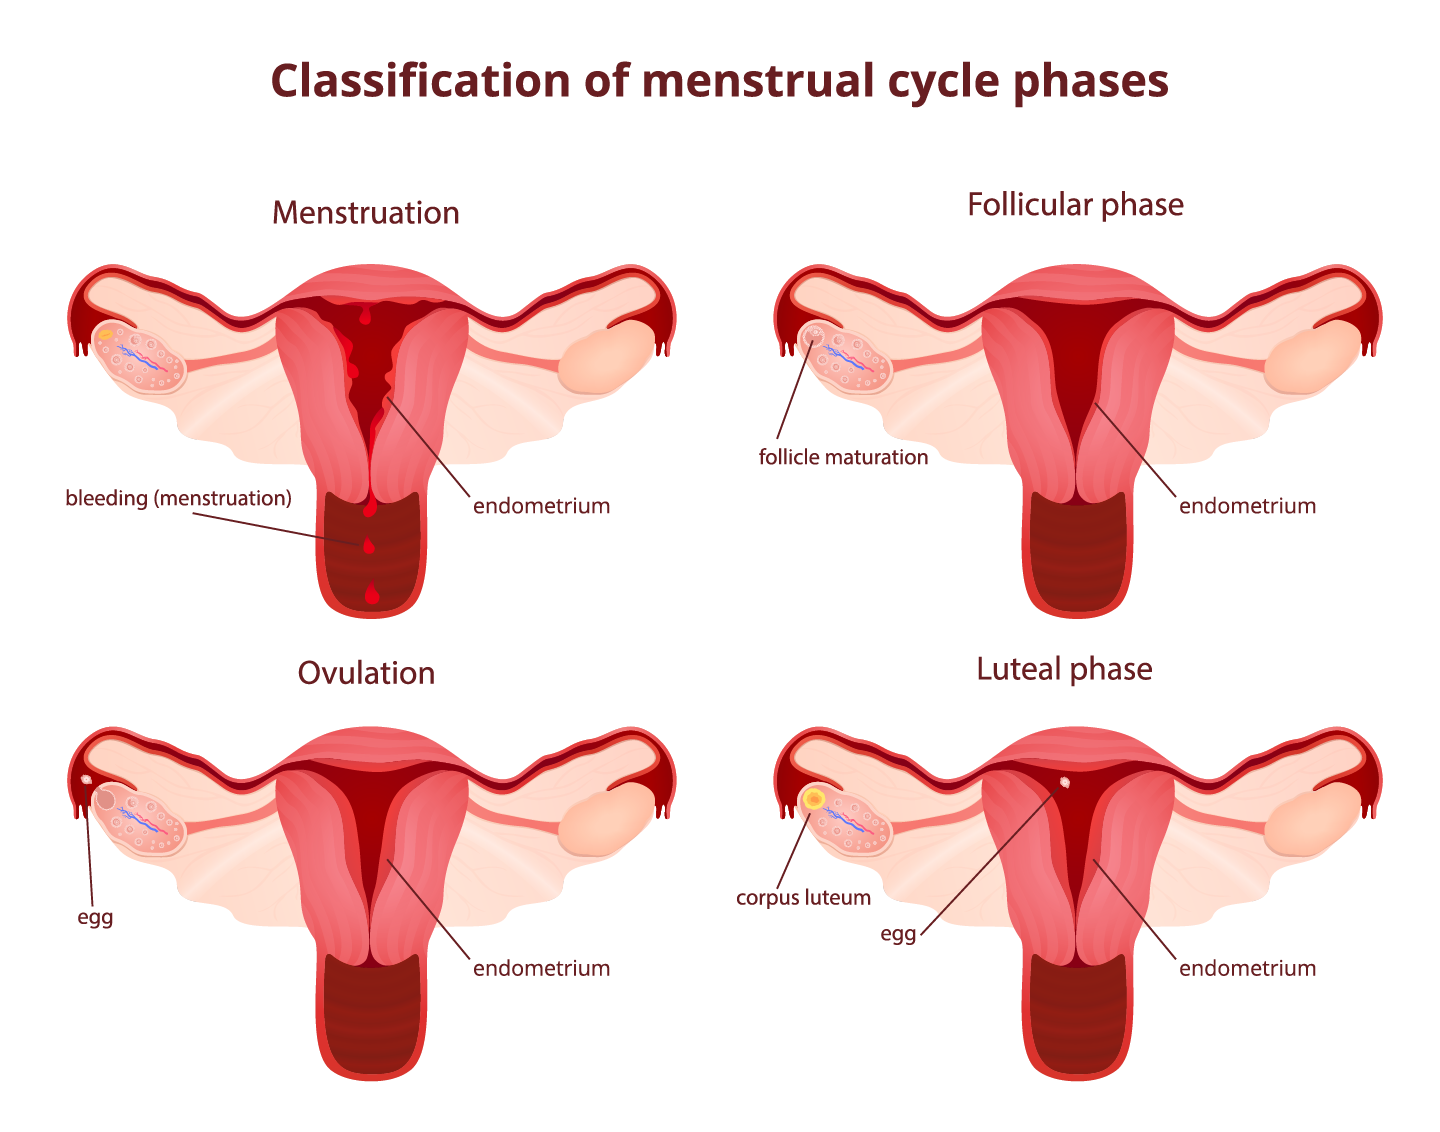 A woman's monthly menstrual cycle